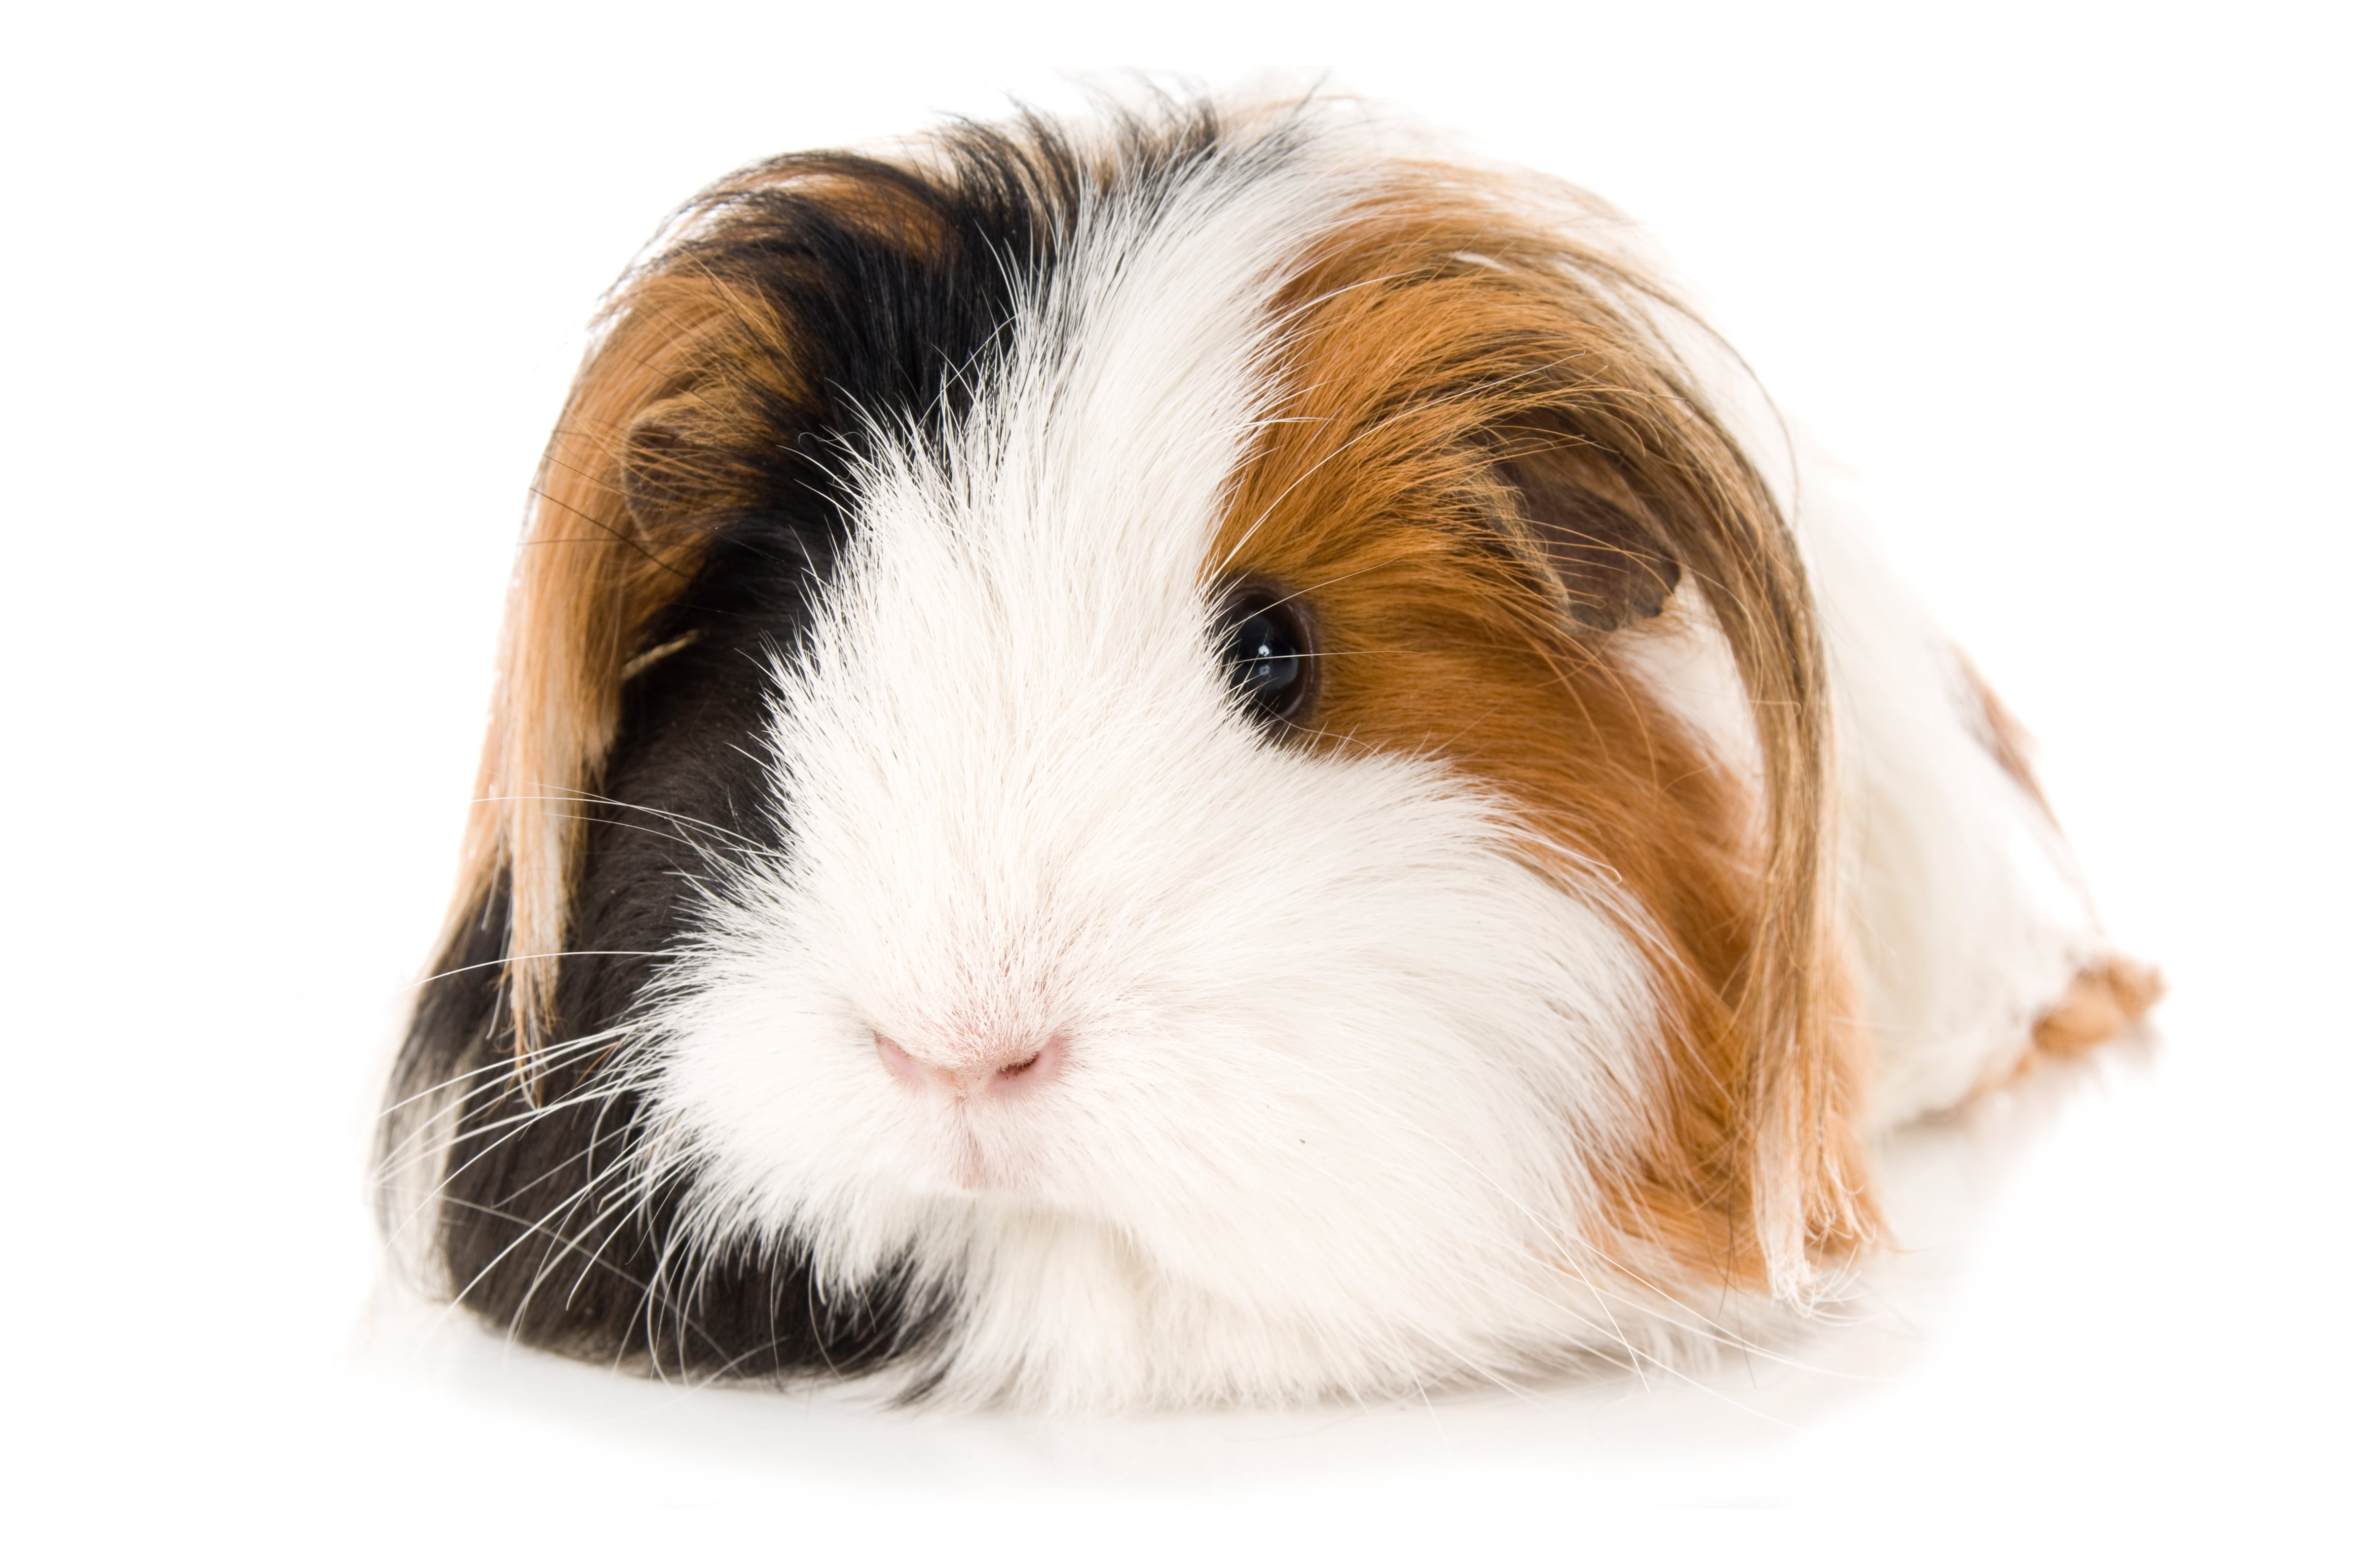 A cute guinea pig, just like some of the guests at our guinea pig boarding hotel!